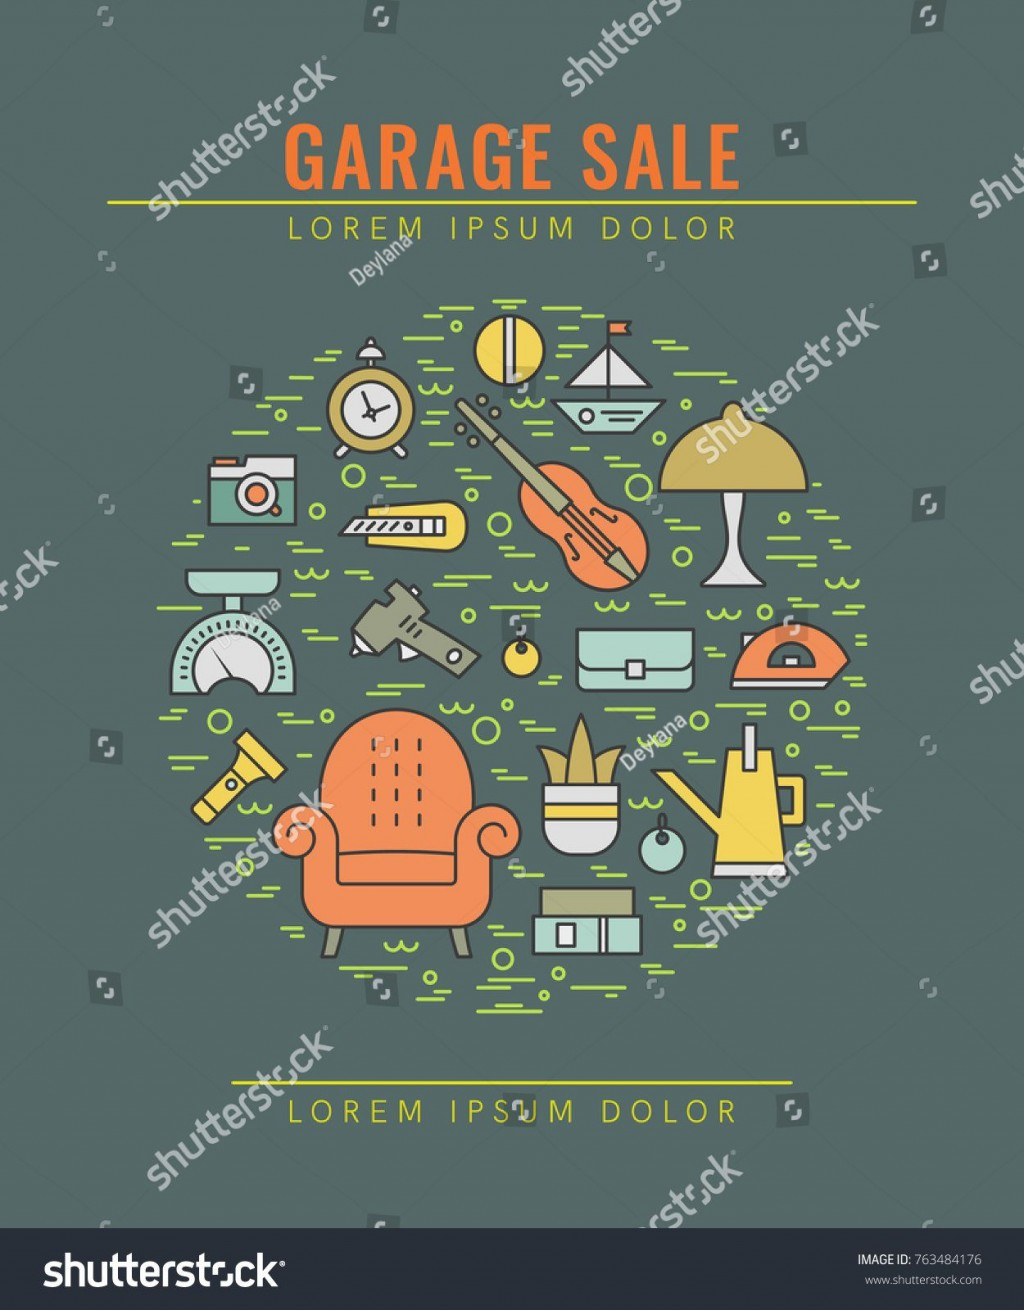 008 Impressive Yard Sale Flyer Template Concept  Free Garage Microsoft WordLarge